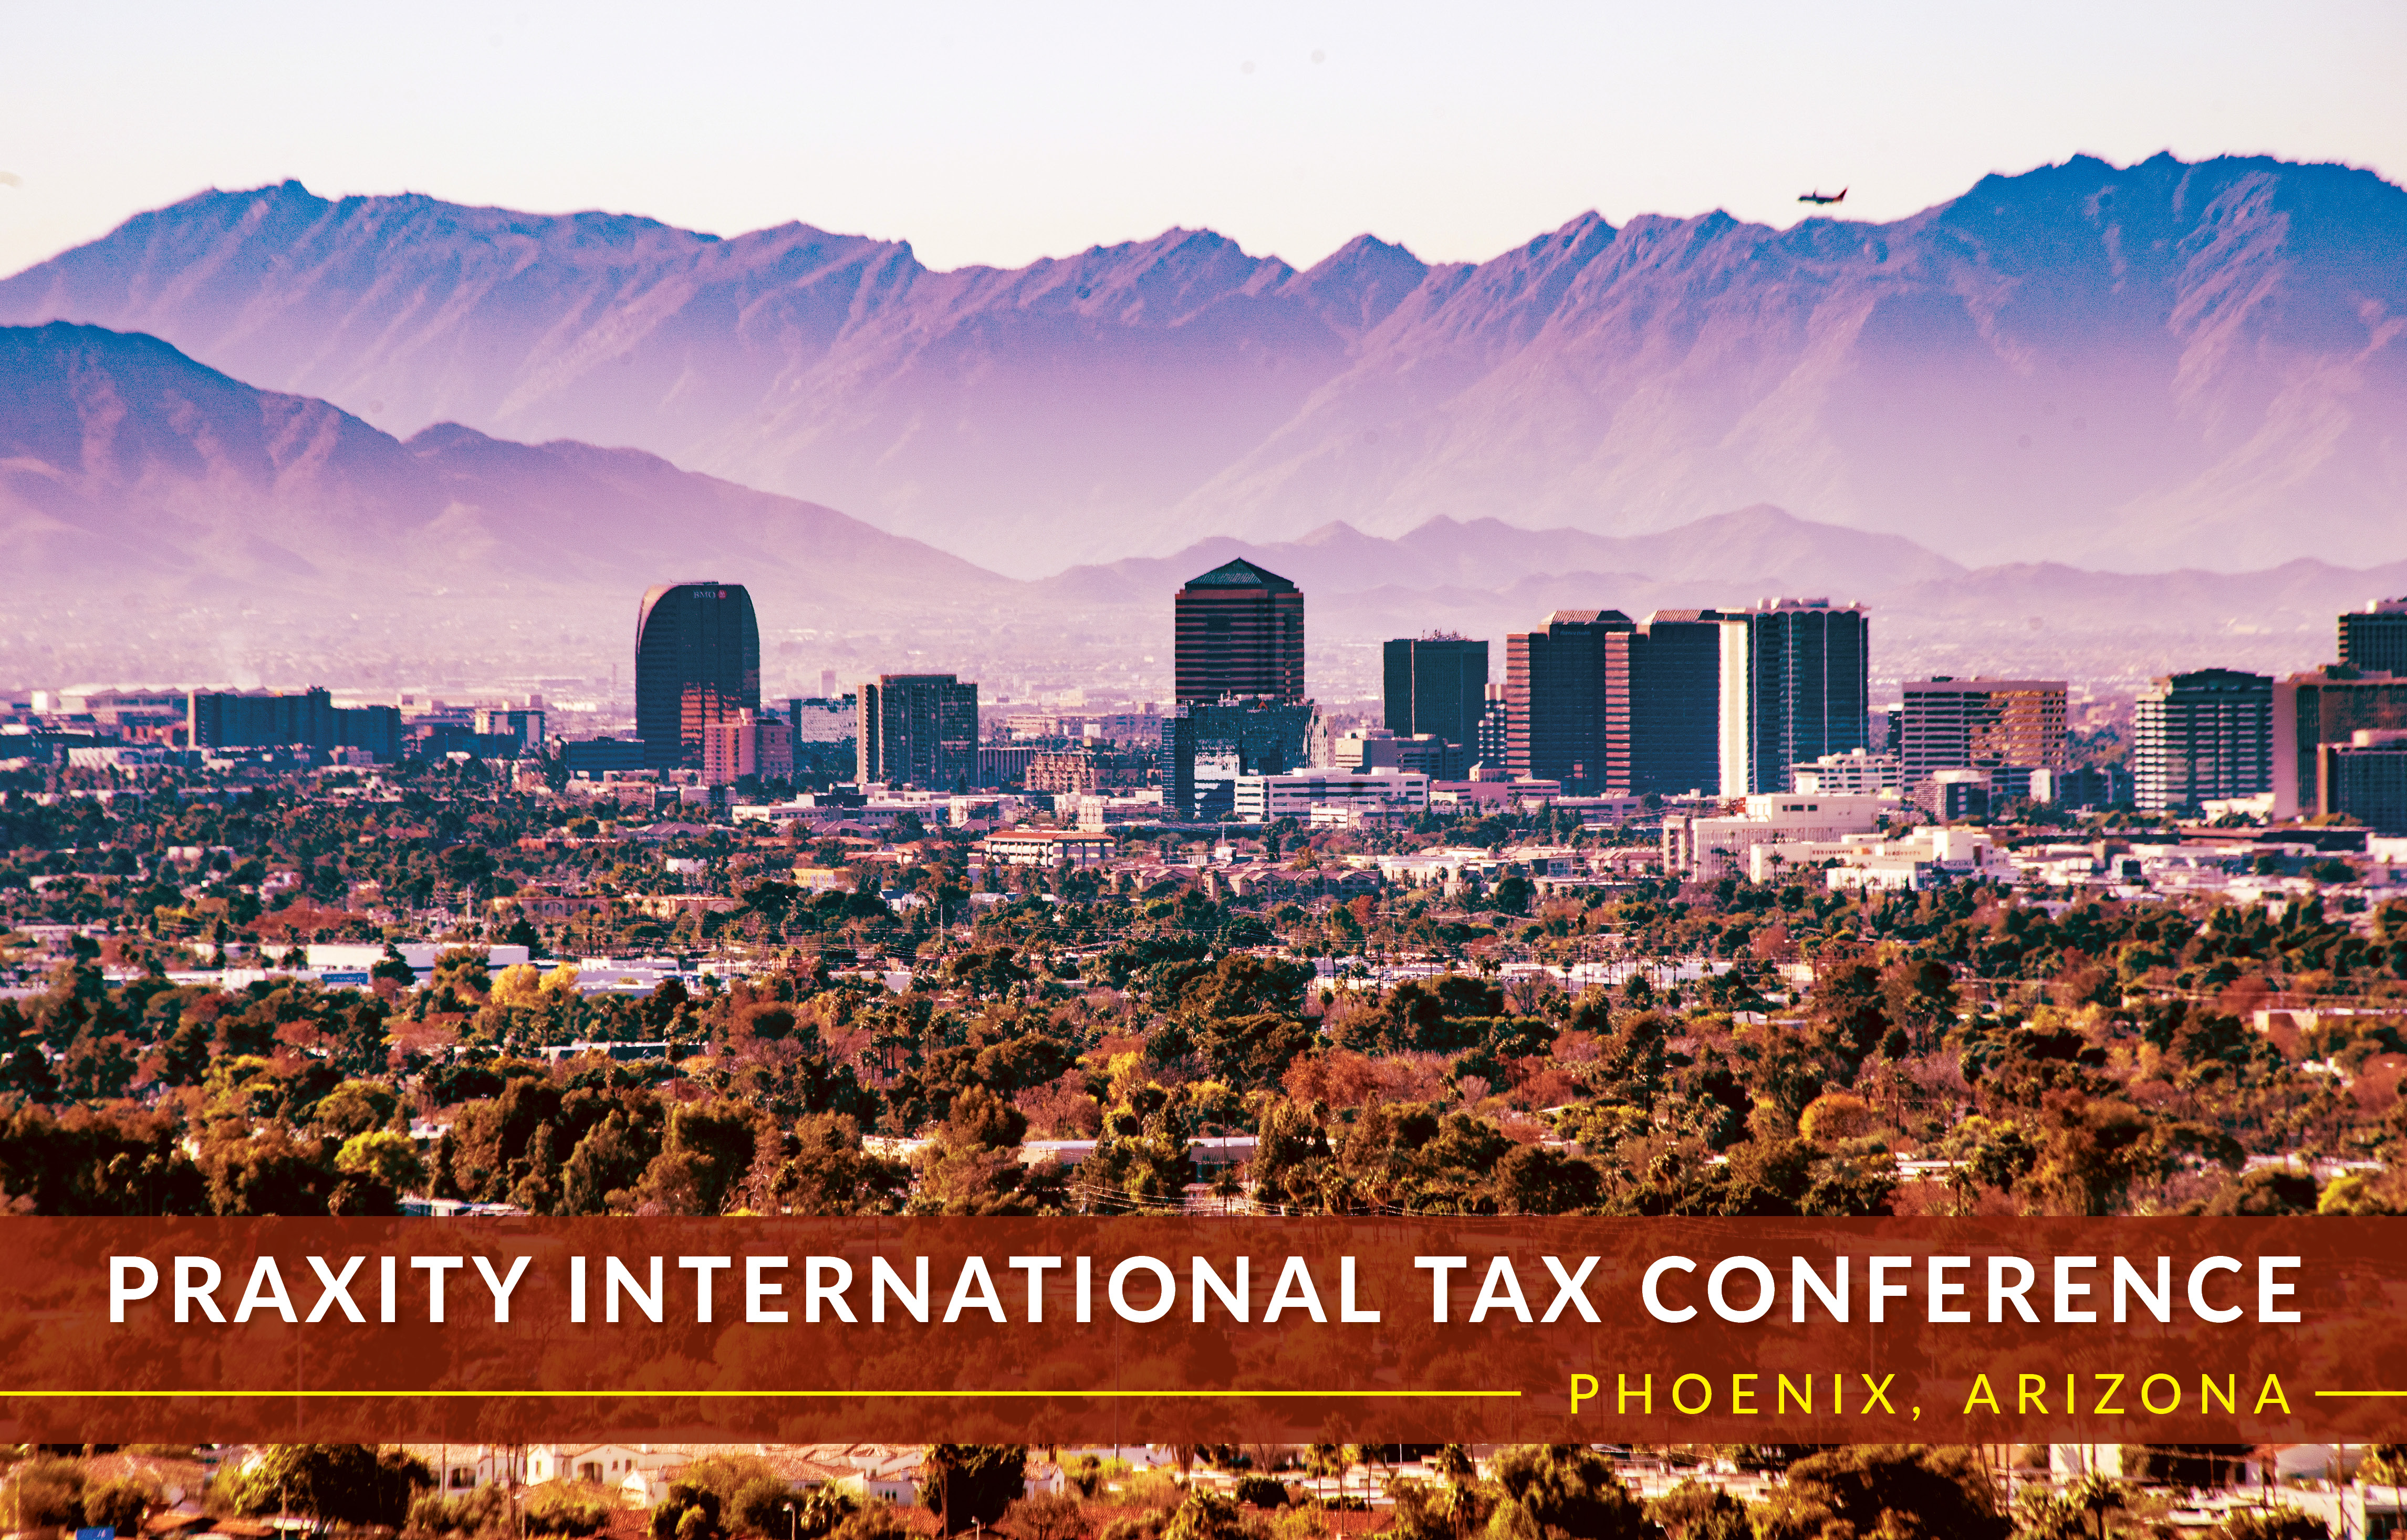 Praxity North American International Tax Conference 2019